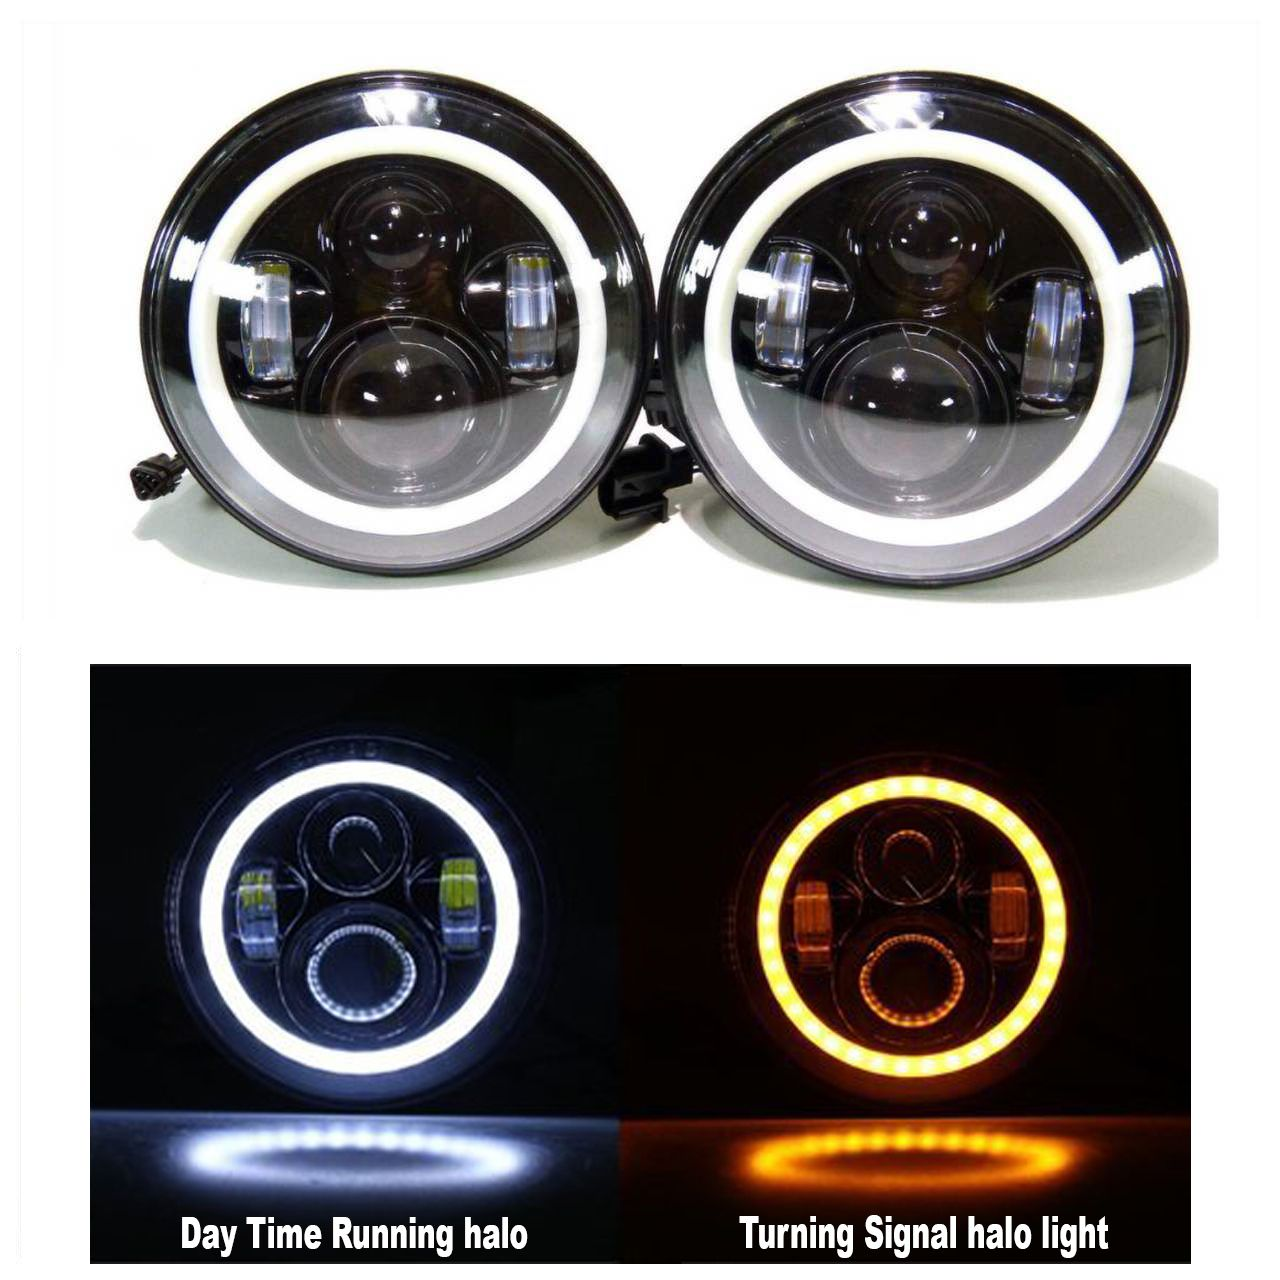 Led Projectors White Halos Jeeps Pinterest Jeep Wrangler Jk Pillar Gauge Pod Halo Headlights With Daytime Running And Amber Turn Signal Function